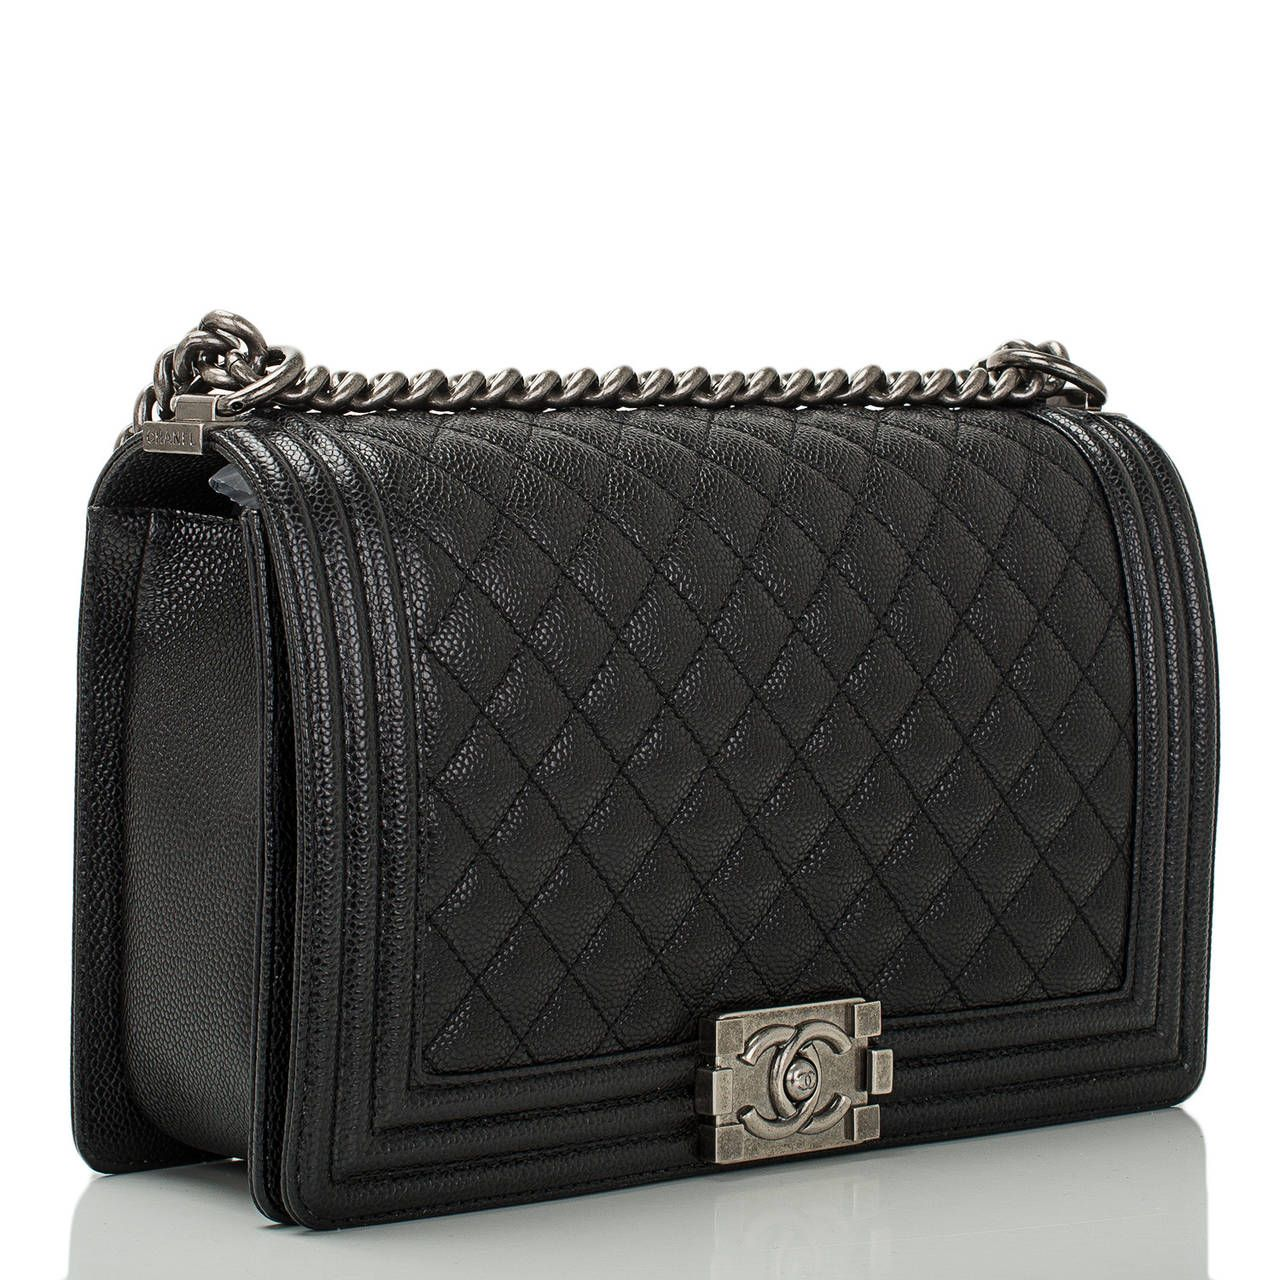 35130e47a159 On the waitlist, coming soon. Yay! Chanel Quilted Boy Bag New Medium in  Black Caviar with Ruthenium Hardware